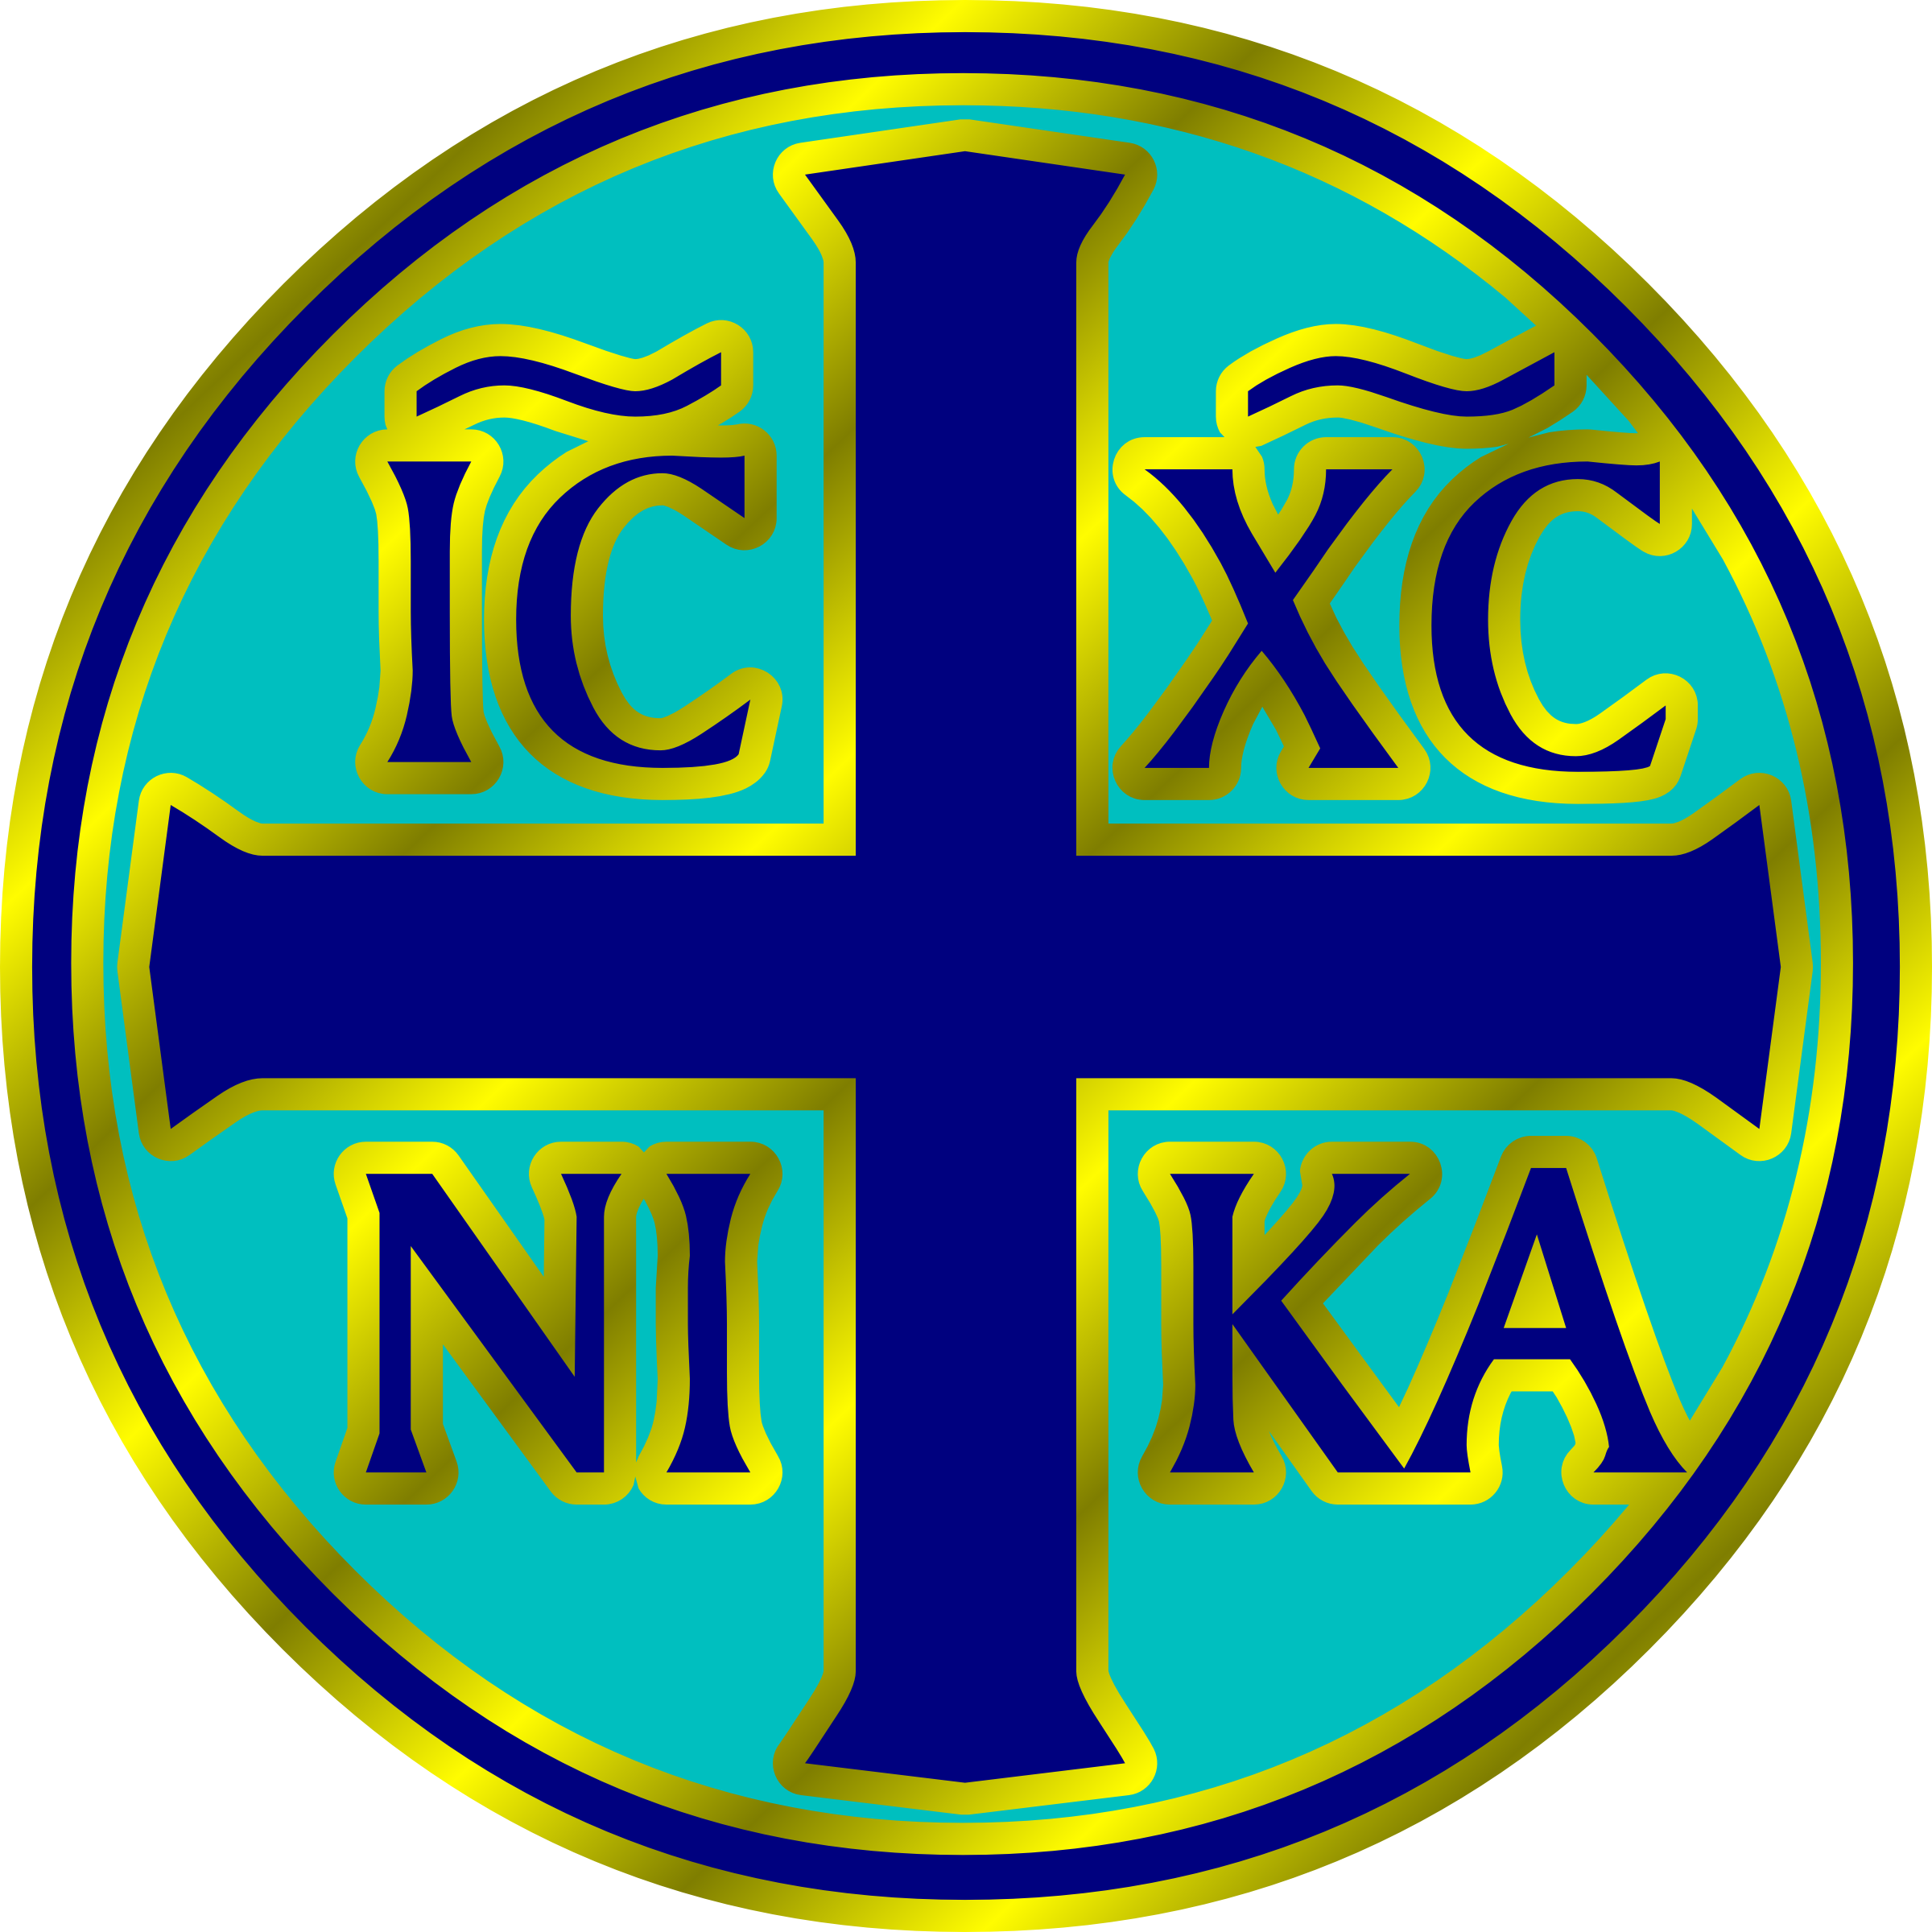 IC XC NIKA by PhilipBarrington